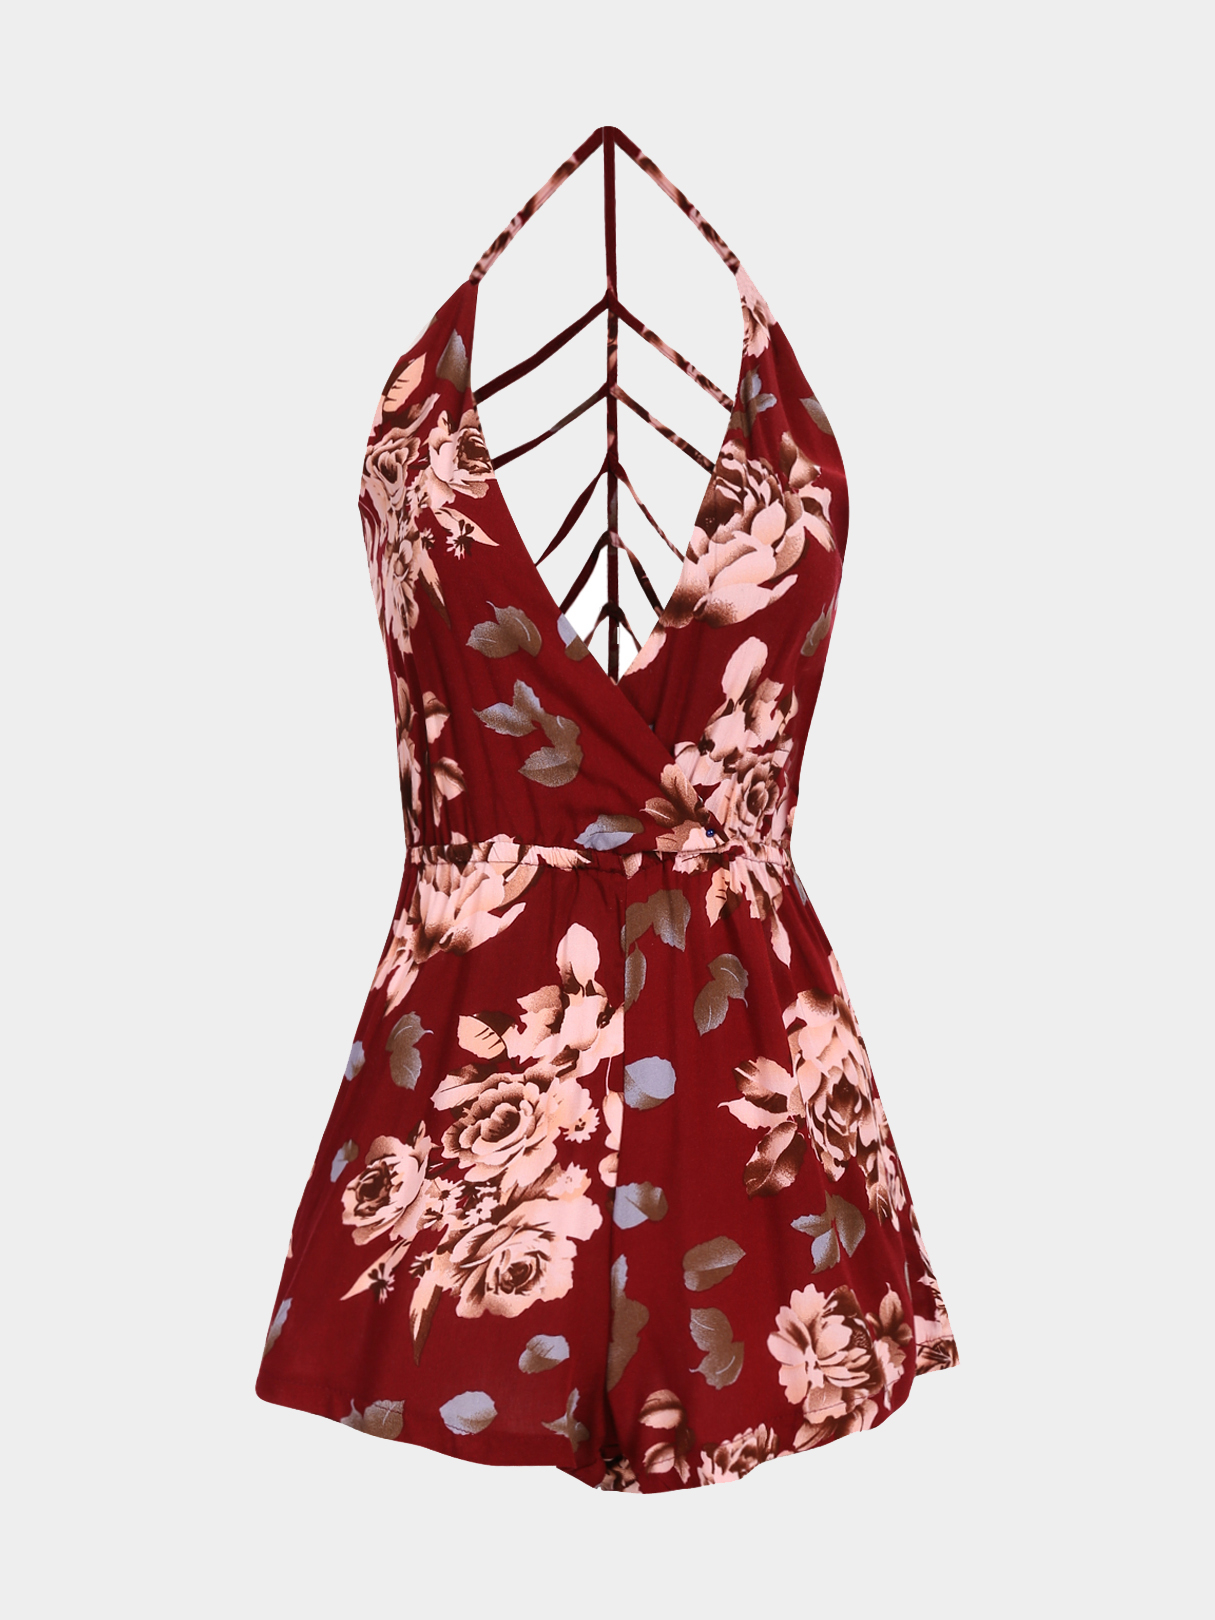 Plunge V-neck Caged Backless Floral Print Cami Playsuit